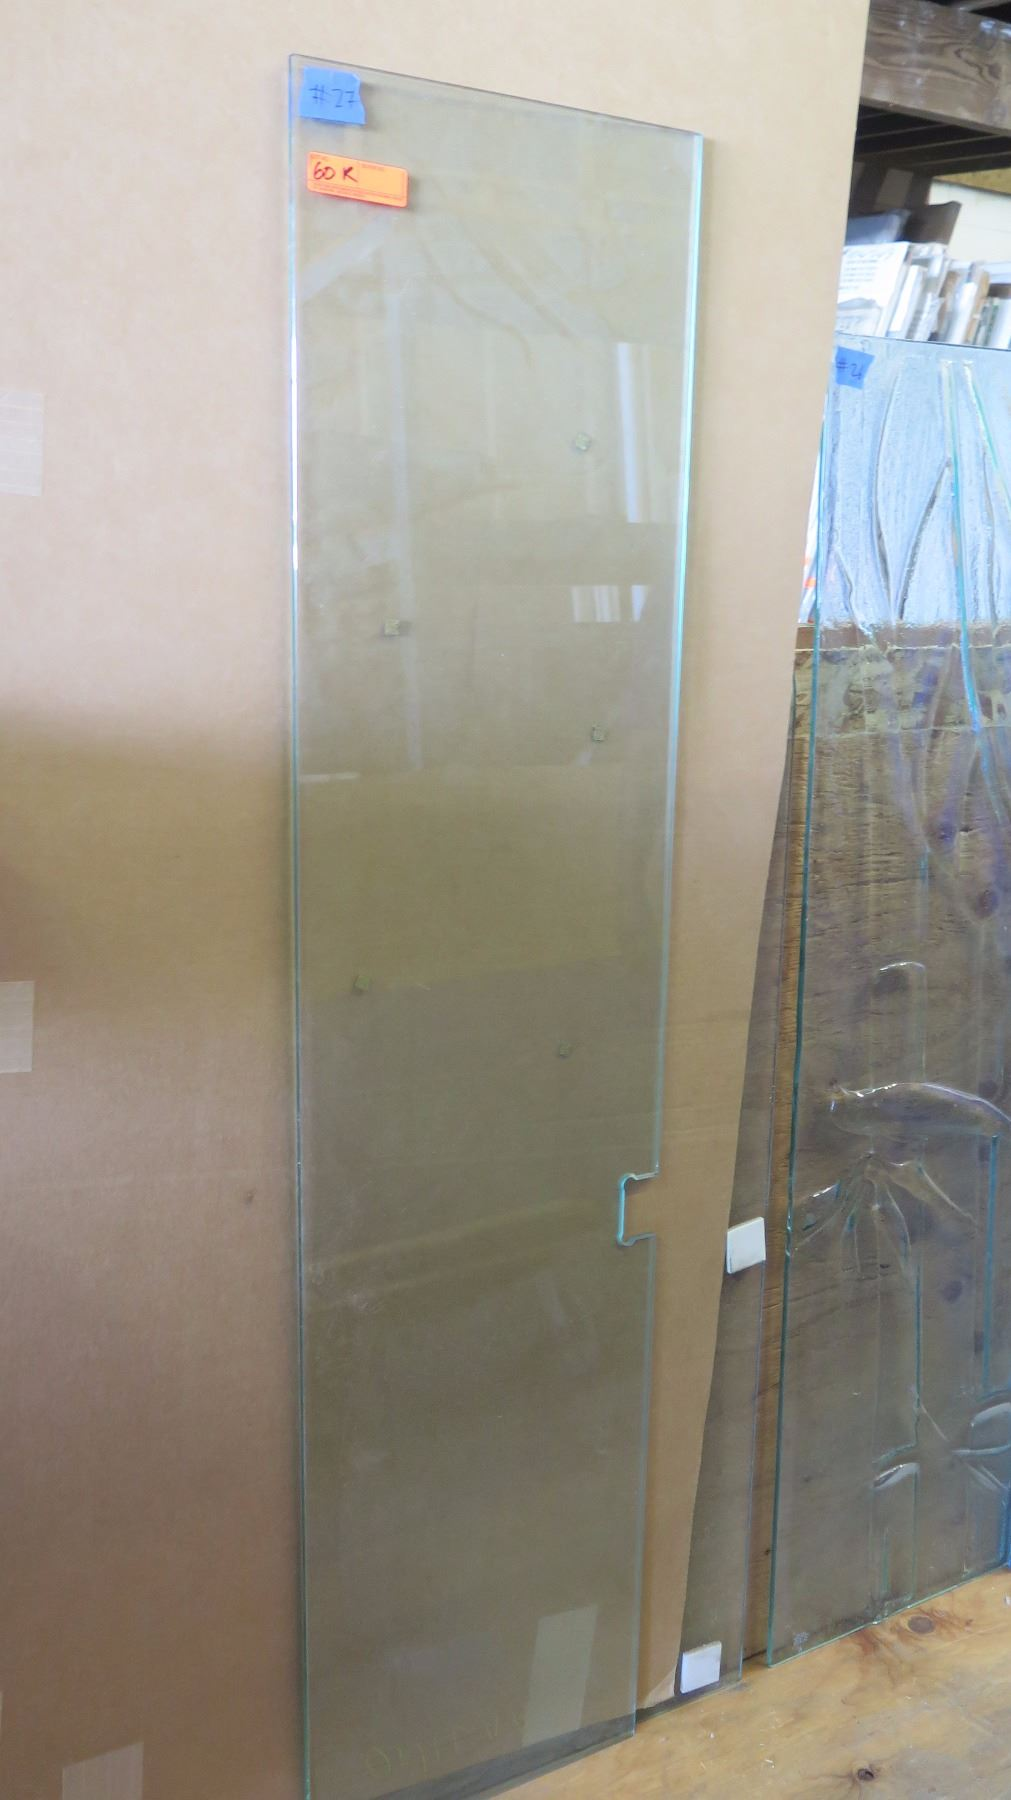 Tempered glass door panel 38 clear 15 58 x 66 343 retail image 1 tempered glass door panel 38 clear 15 5 planetlyrics Gallery